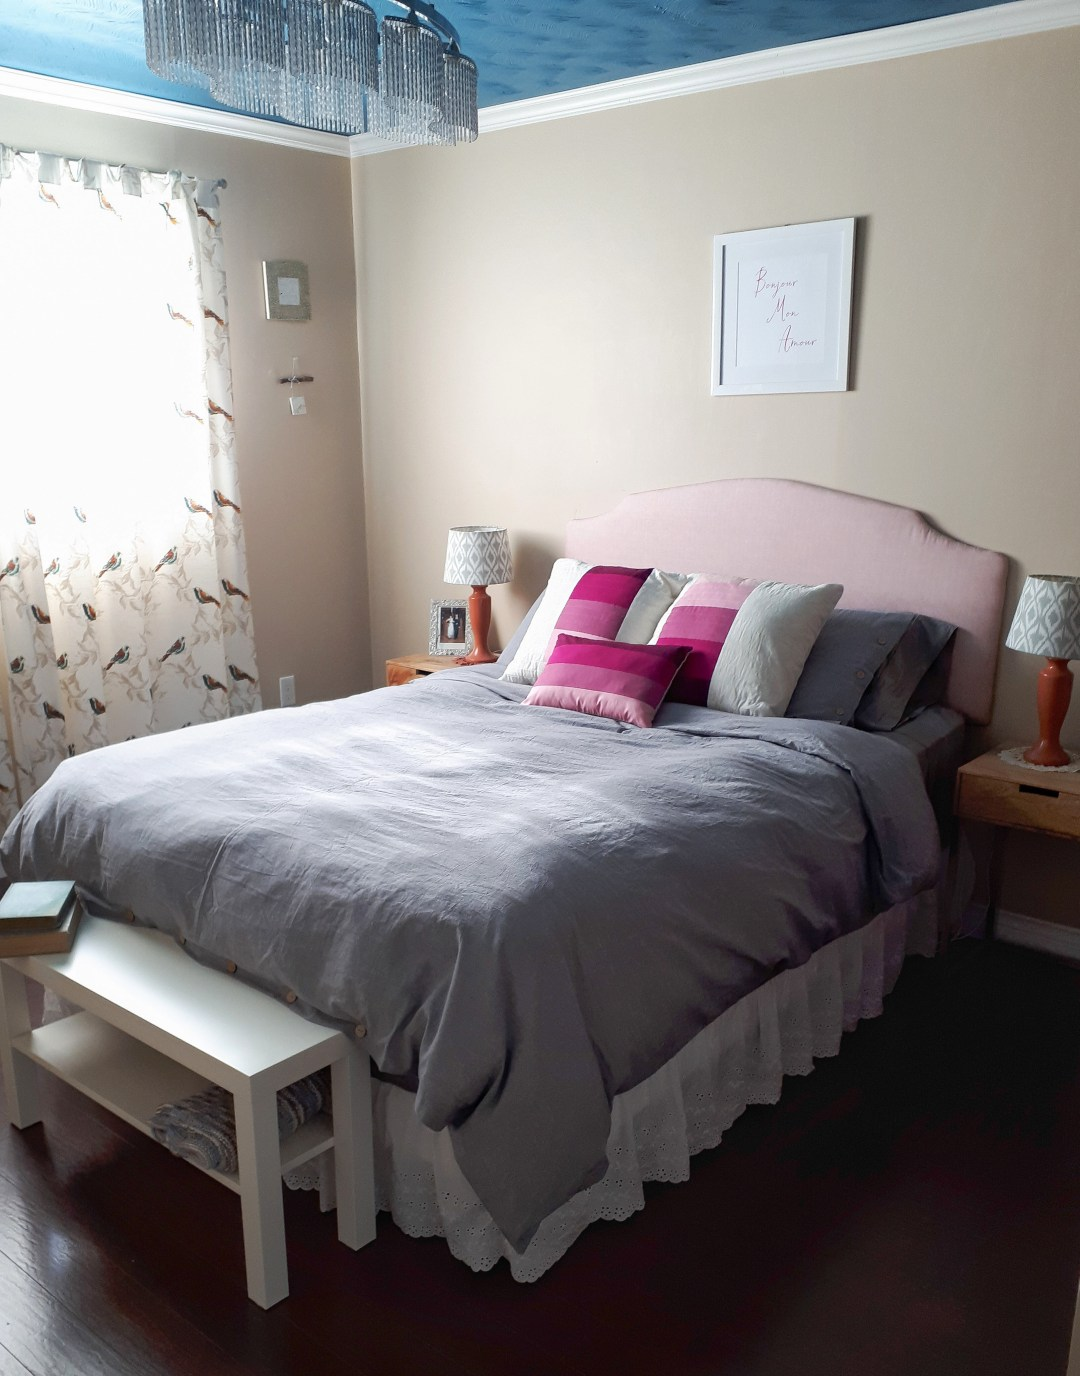 Pretty pastel master bedroom refresh on a budget. With a little creativity and planning you can have an affordable and super cozy bedroom!